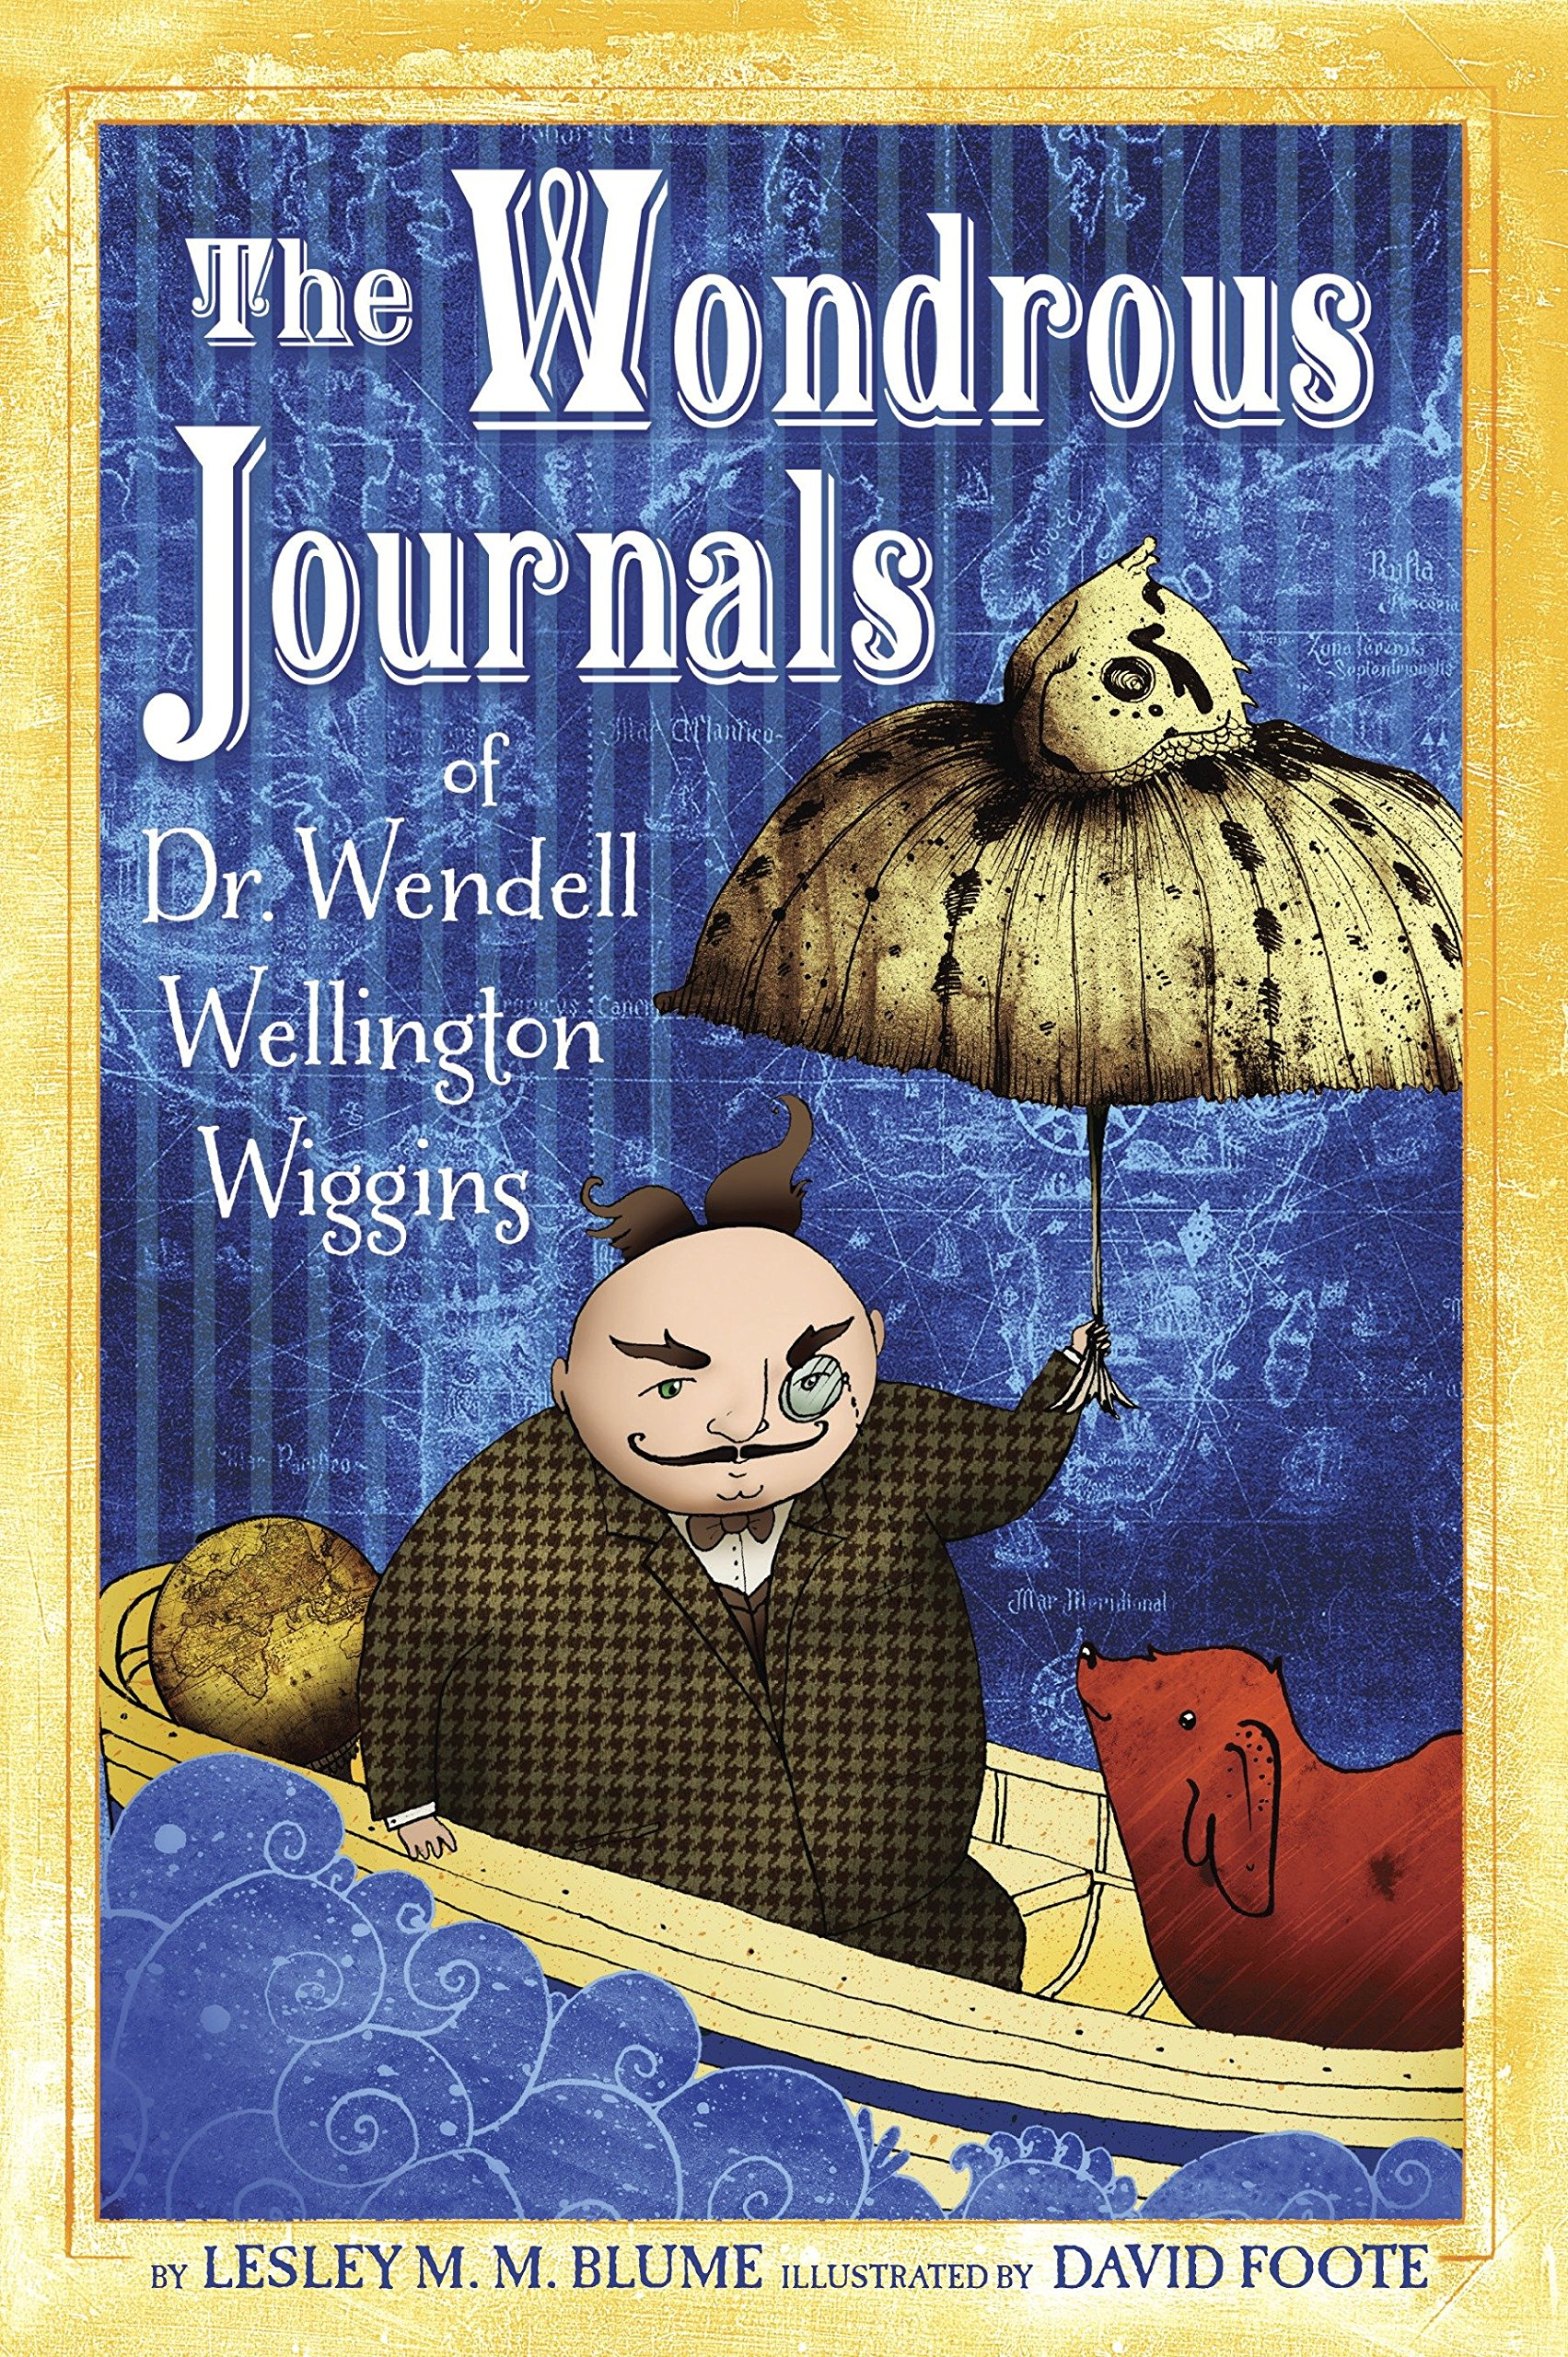 The Wondrous Journals of Dr. Wendell Wellington Wiggins pdf